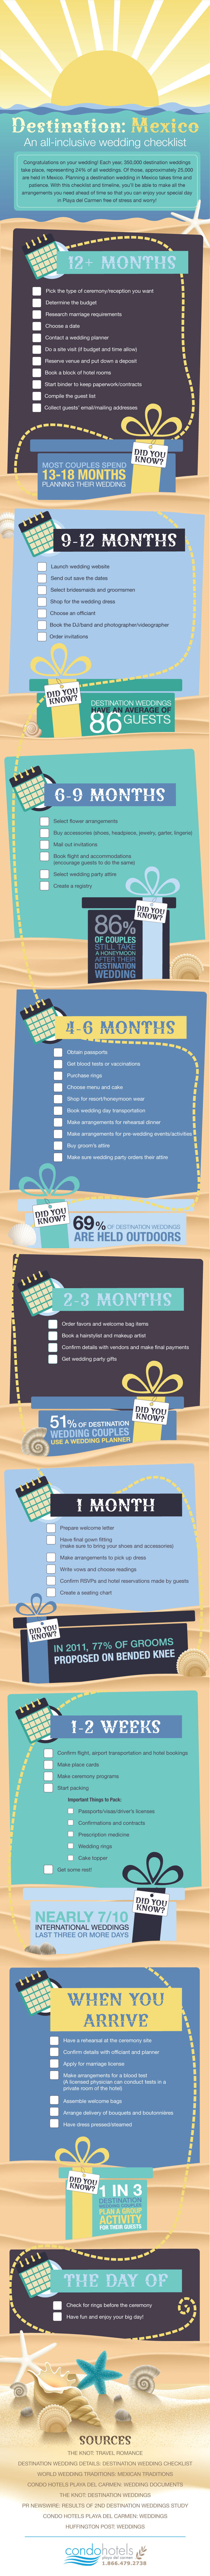 Condo Hotels Playa del Carmen Destination Wedding Infographic